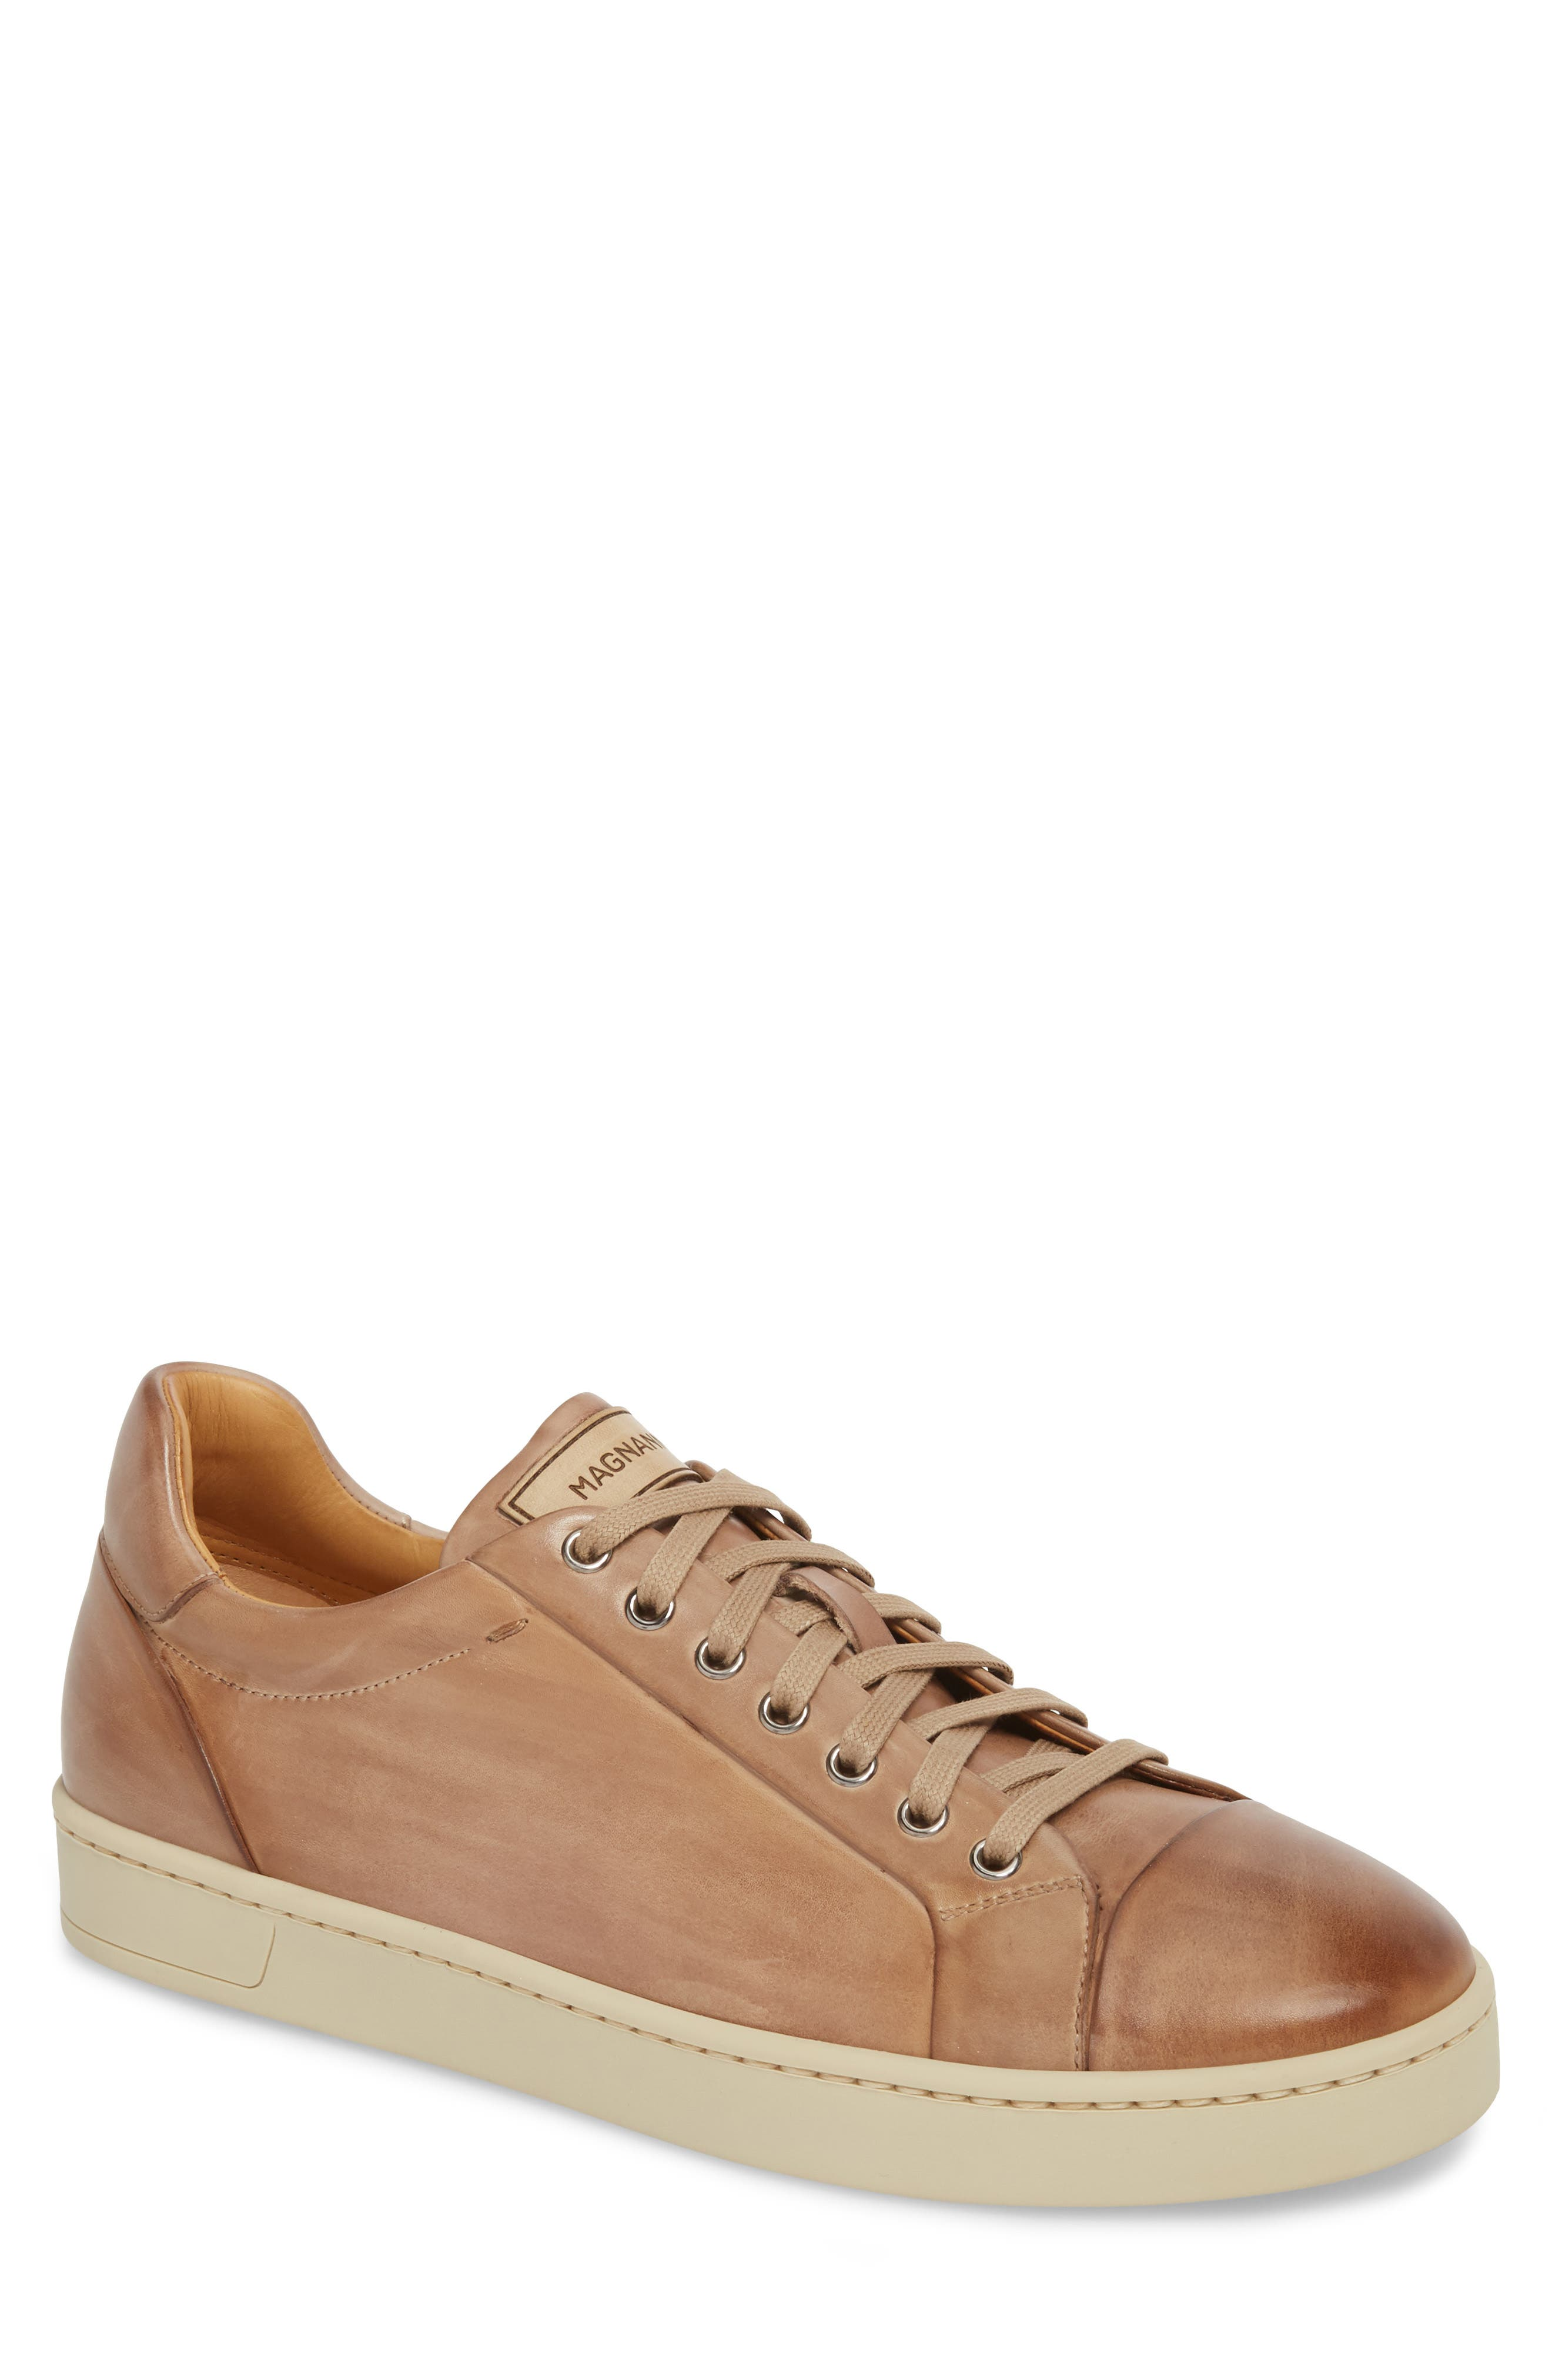 Erardo Low Top Sneaker,                         Main,                         color, Taupe/ Taupe Leather